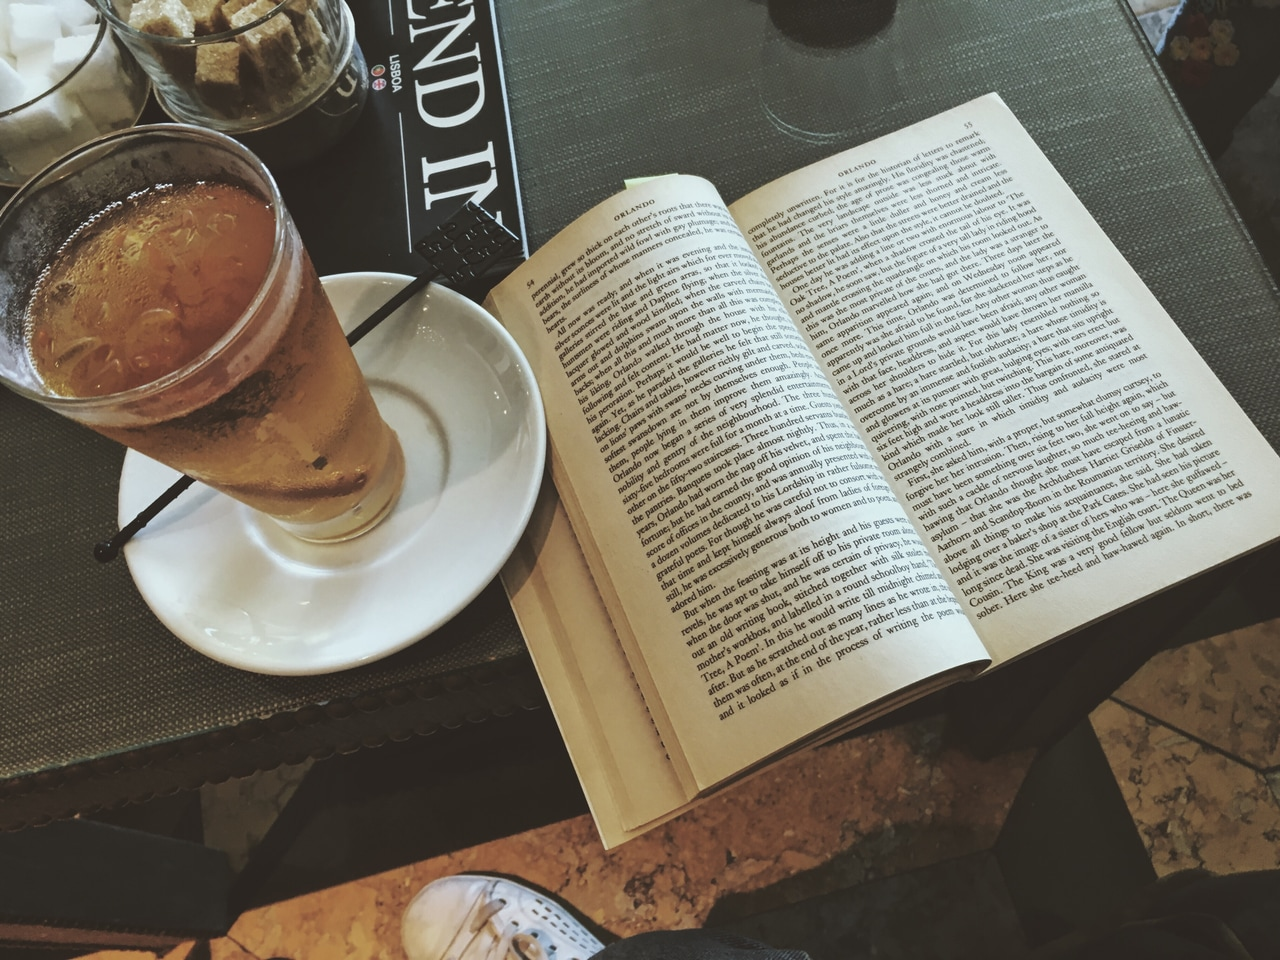 Beige Aesthetic Aesthetic Coffee And Book Image 6008862 On Favim Com